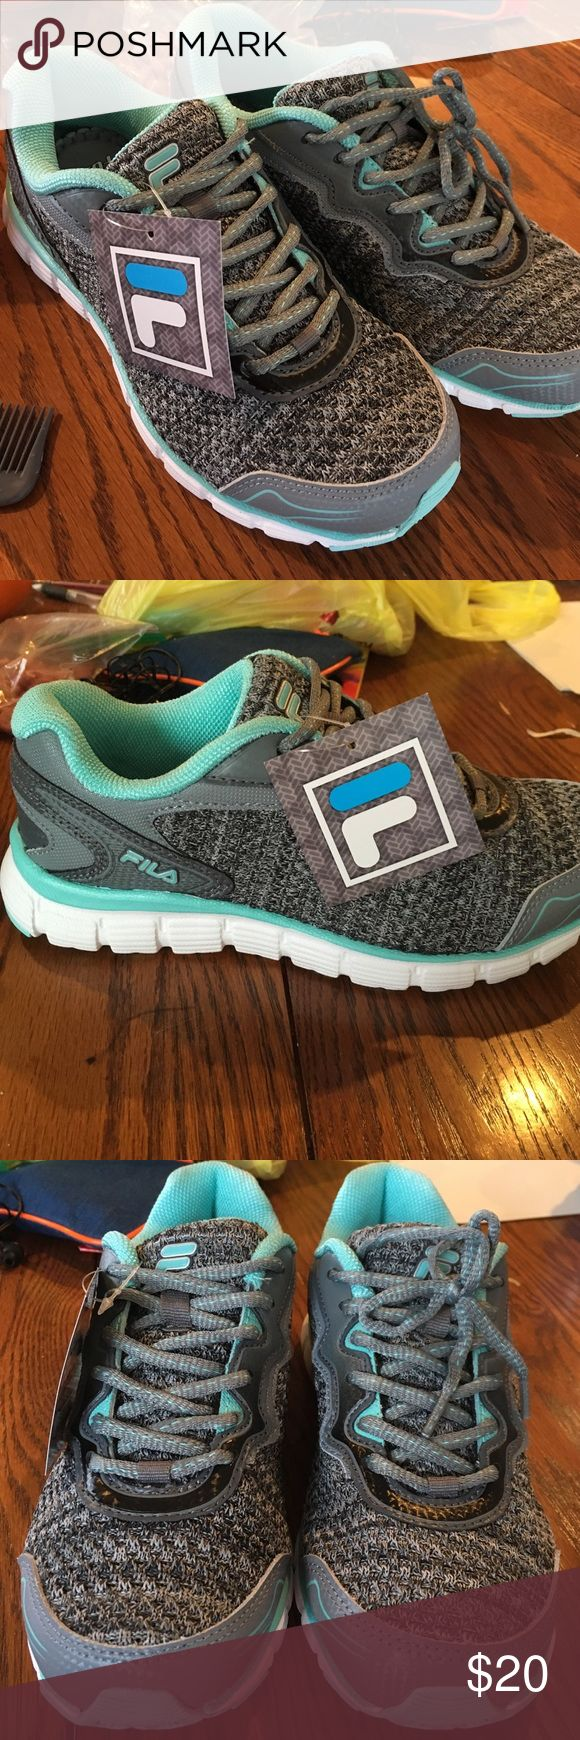 Size 7.5 fila running shoe Brand new with tag. Memory foam. Gray and aqua Fila Shoes Athletic Shoes